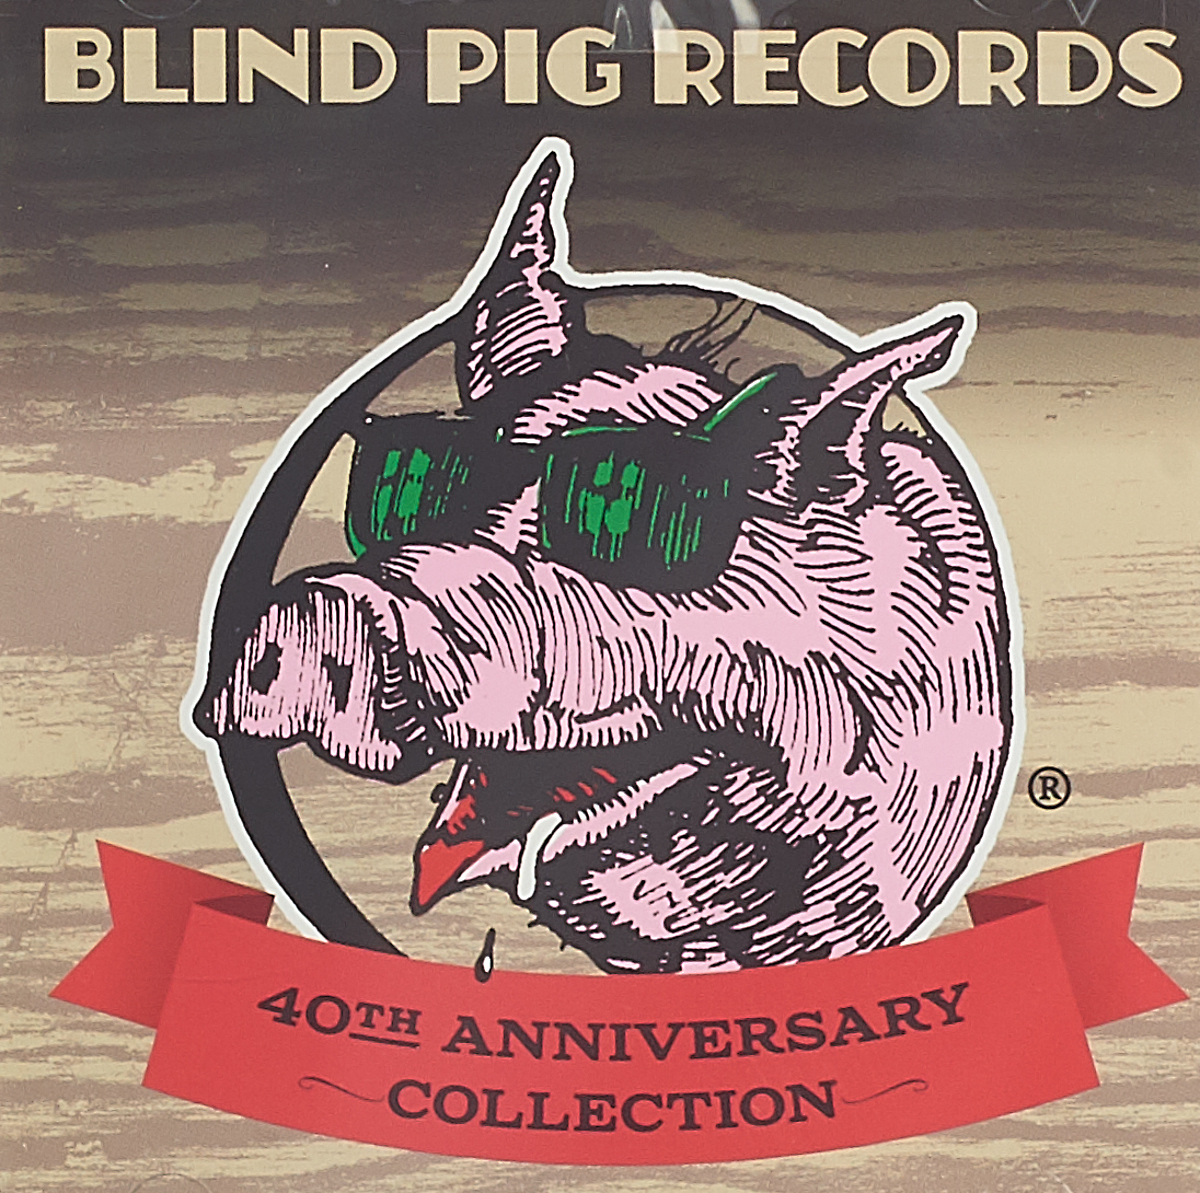 Blind Pig Records. 40th Anniversary Collection (2 CD) odessey and oracle 40th anniversary live concert